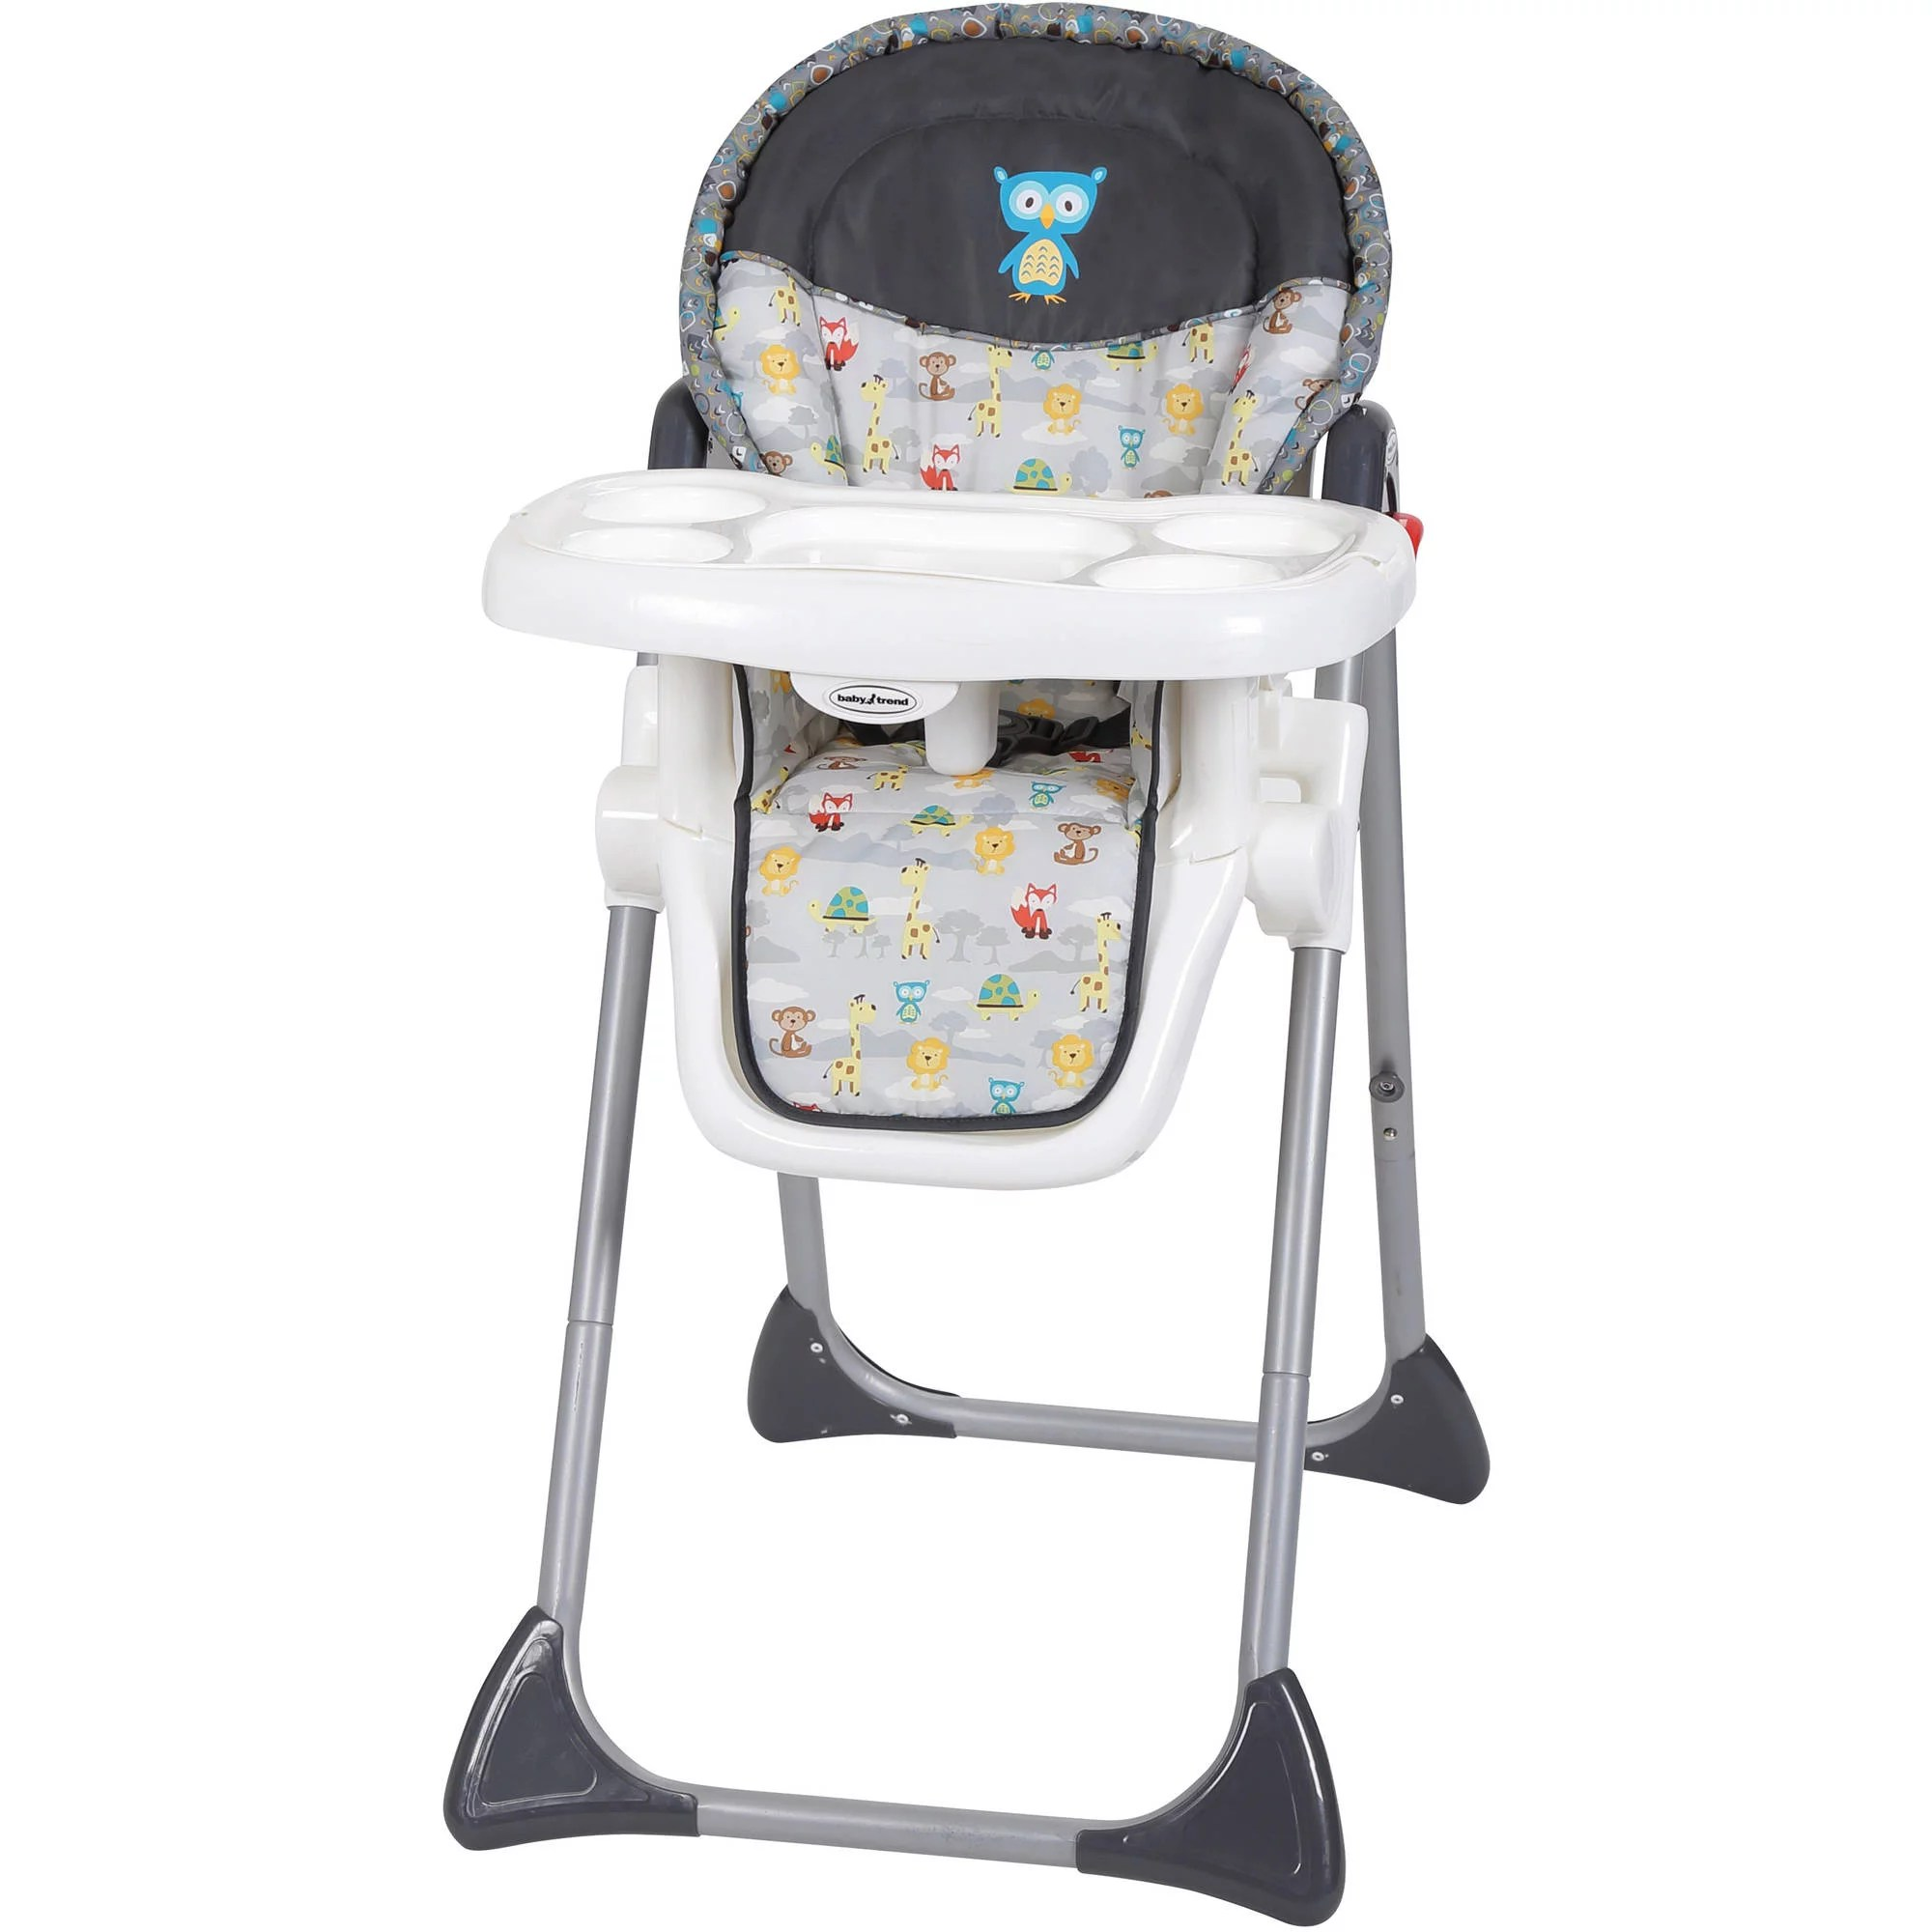 Chairs For Babies Fresh High Chair Tray Rtty1 Rtty1